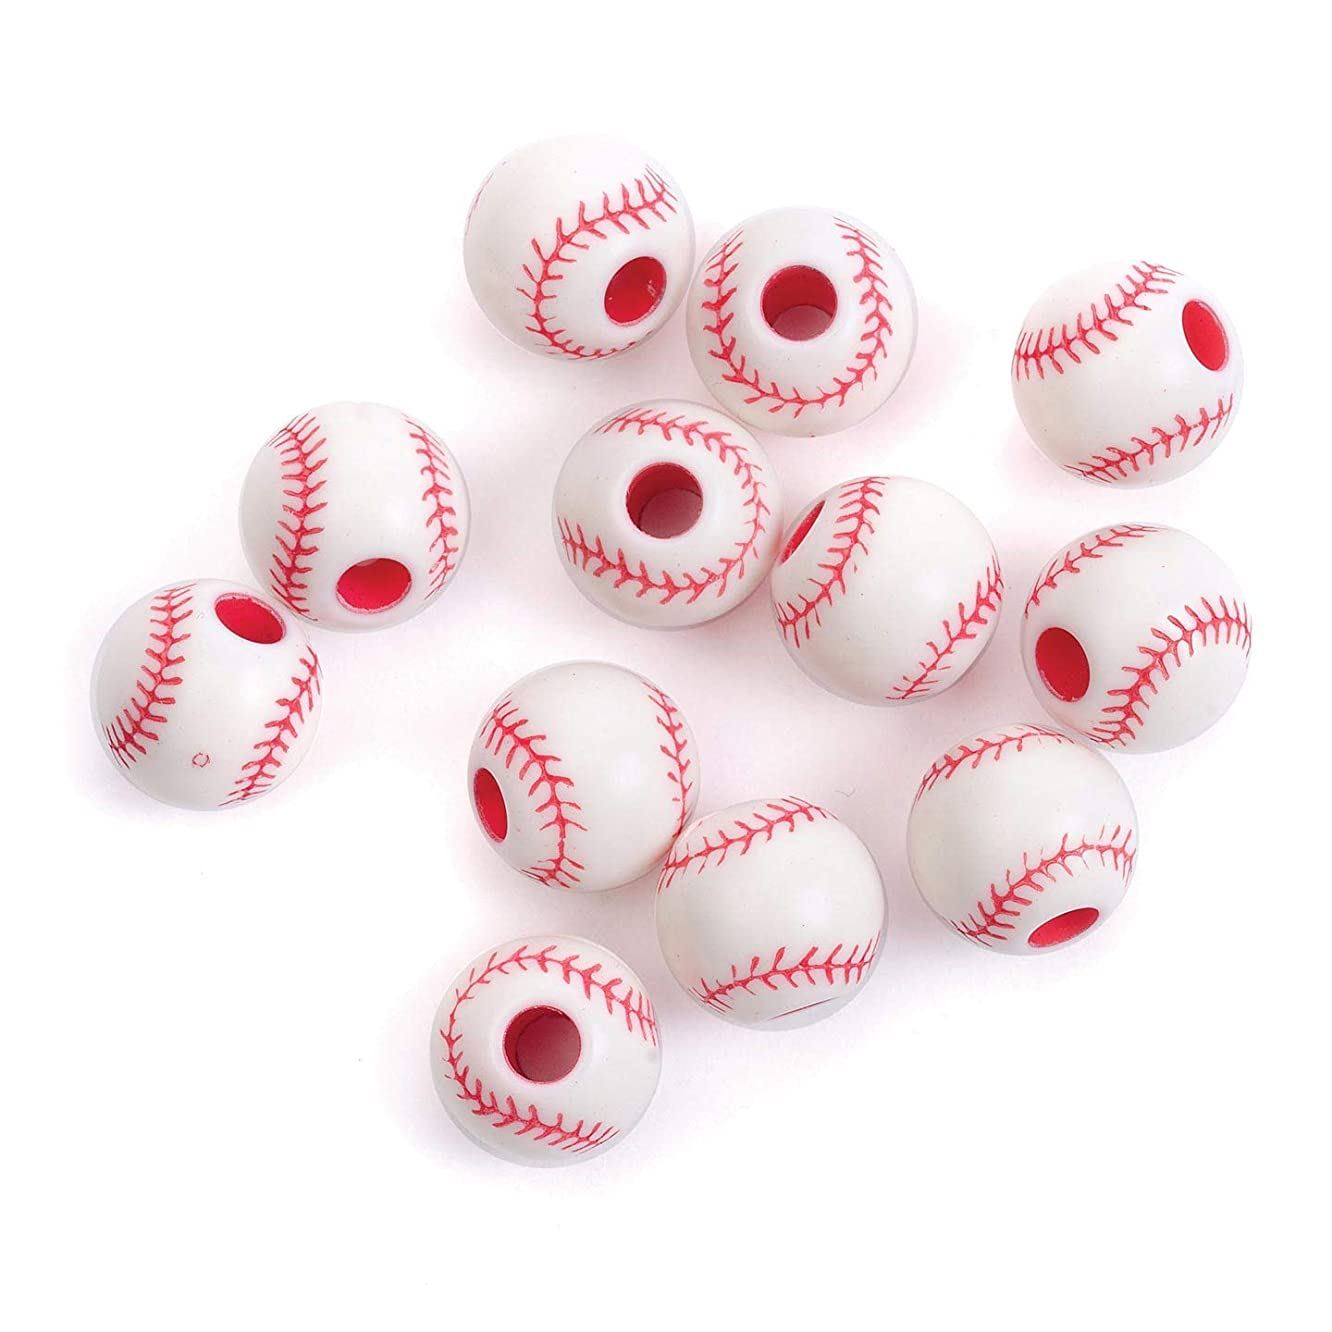 Bulk Buy: Darice DIY Crafts Team Sport Beads Acrylic Baseball Red and White 12mm (6-Pack) 1940-61